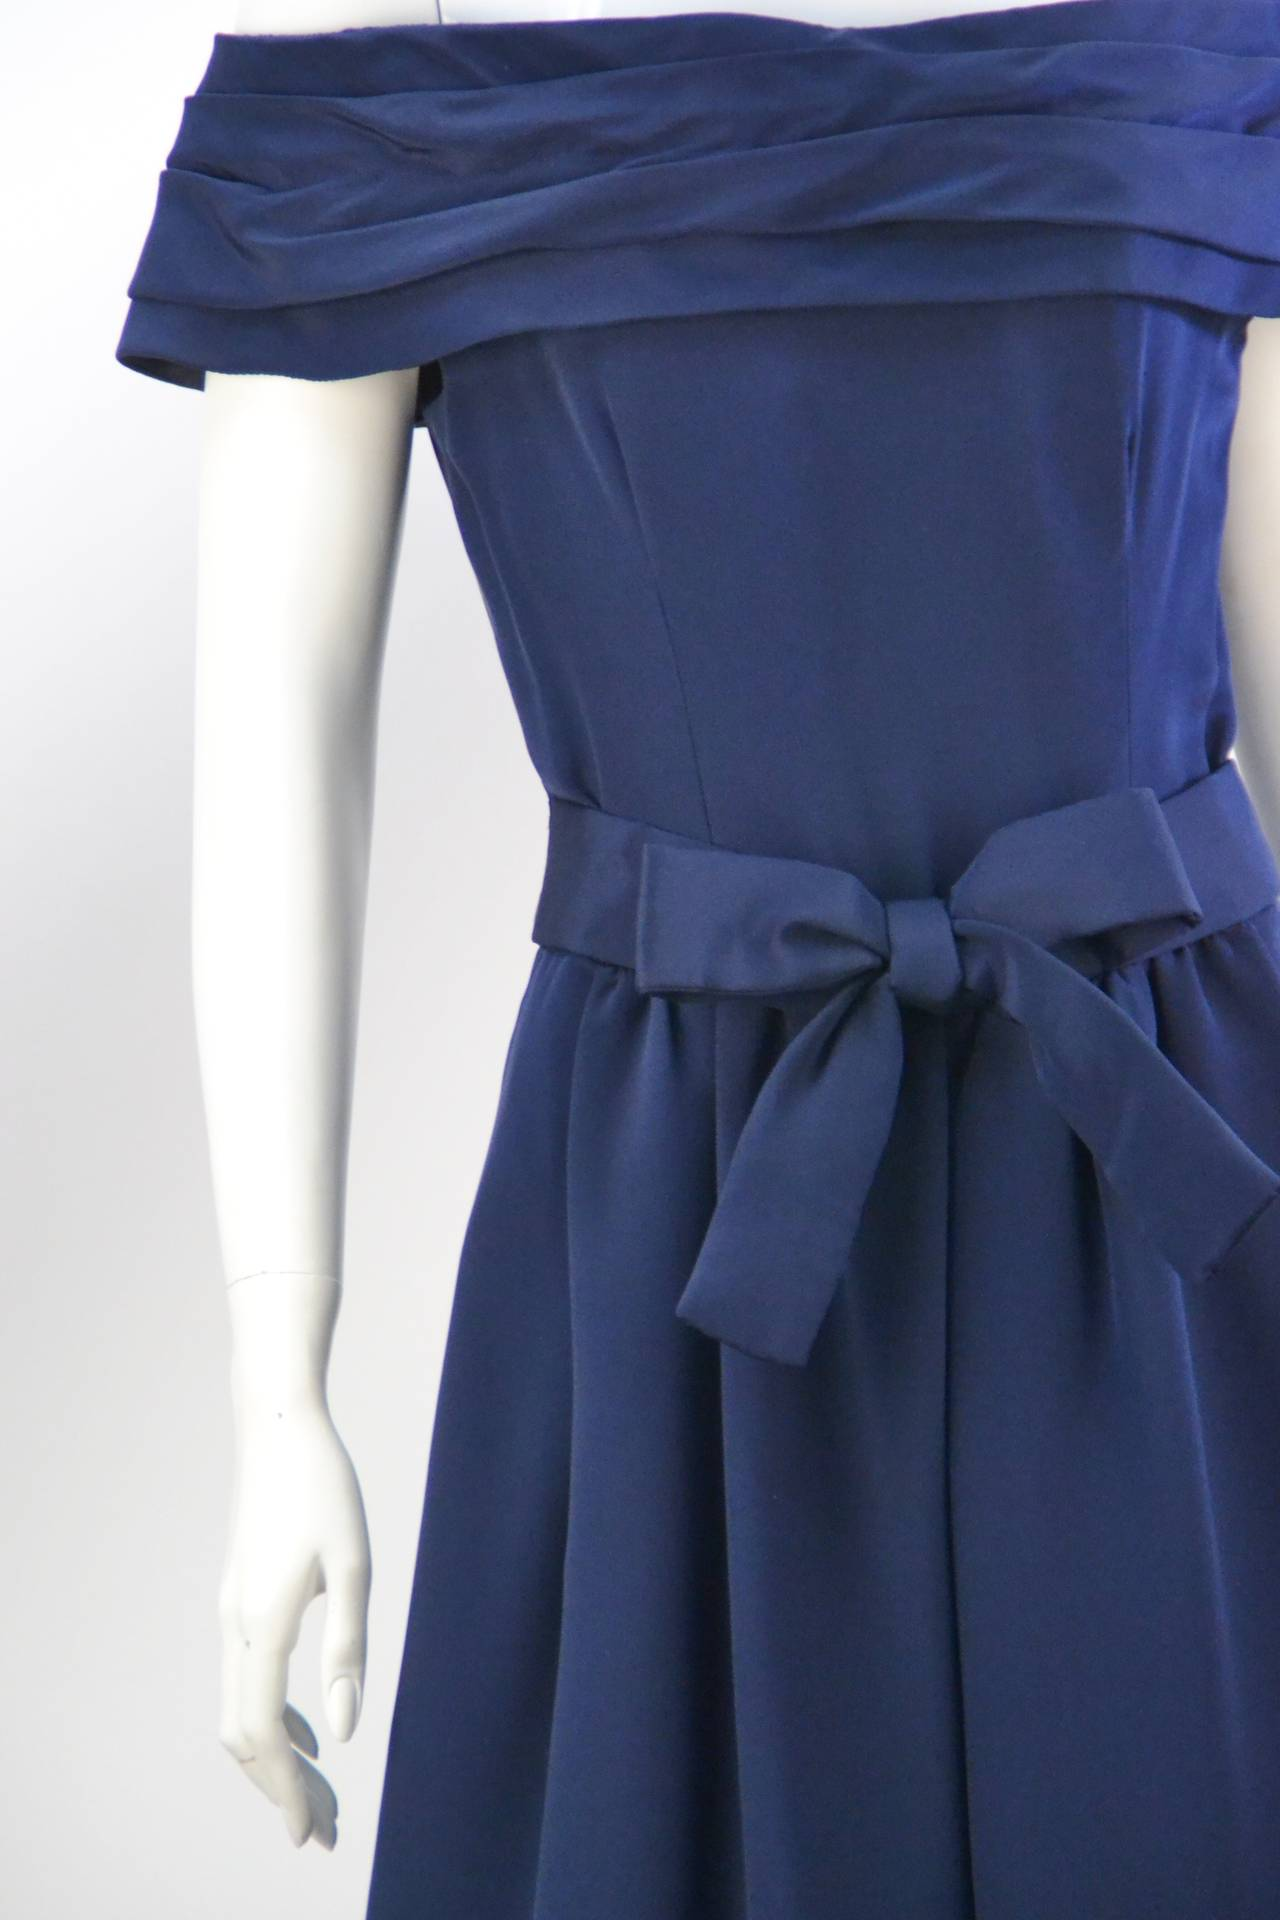 1960s Arnold Scaasi Navy Cocktail Dress In Good Condition For Sale In Houston, TX